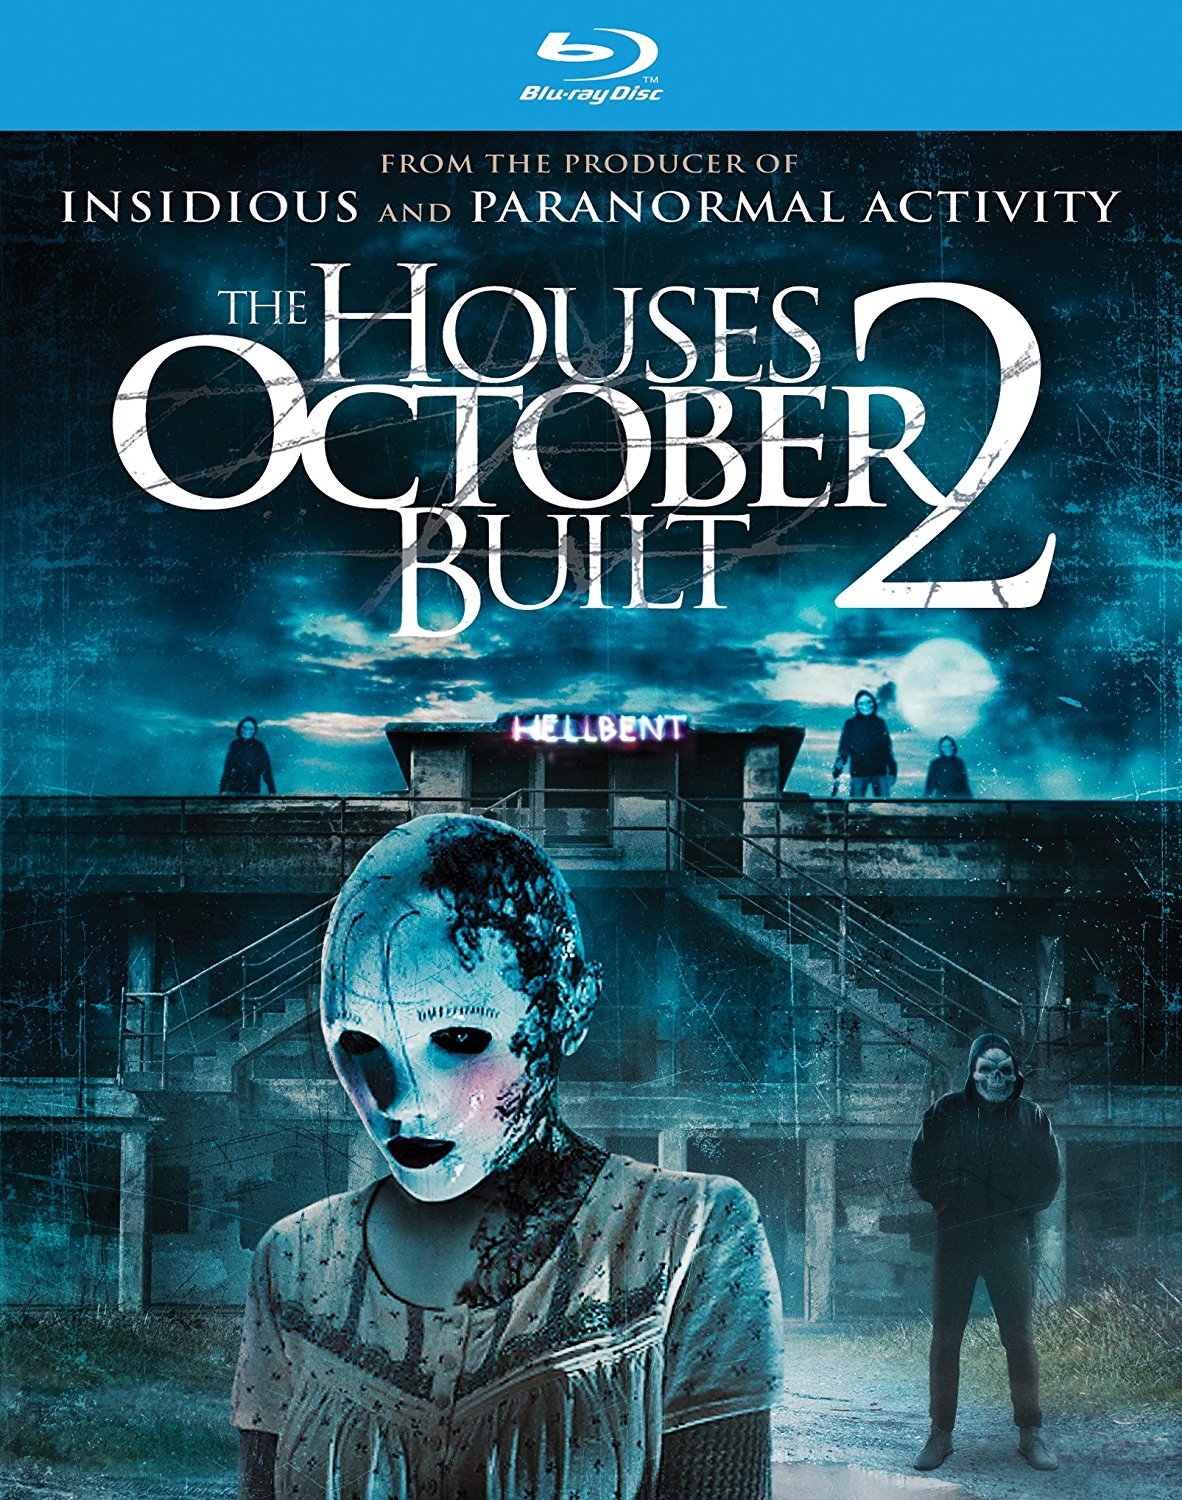 TheHousesOctoberBuilt2Bluray - The Houses October Built 2 Hits Blu-ray and DVD this January